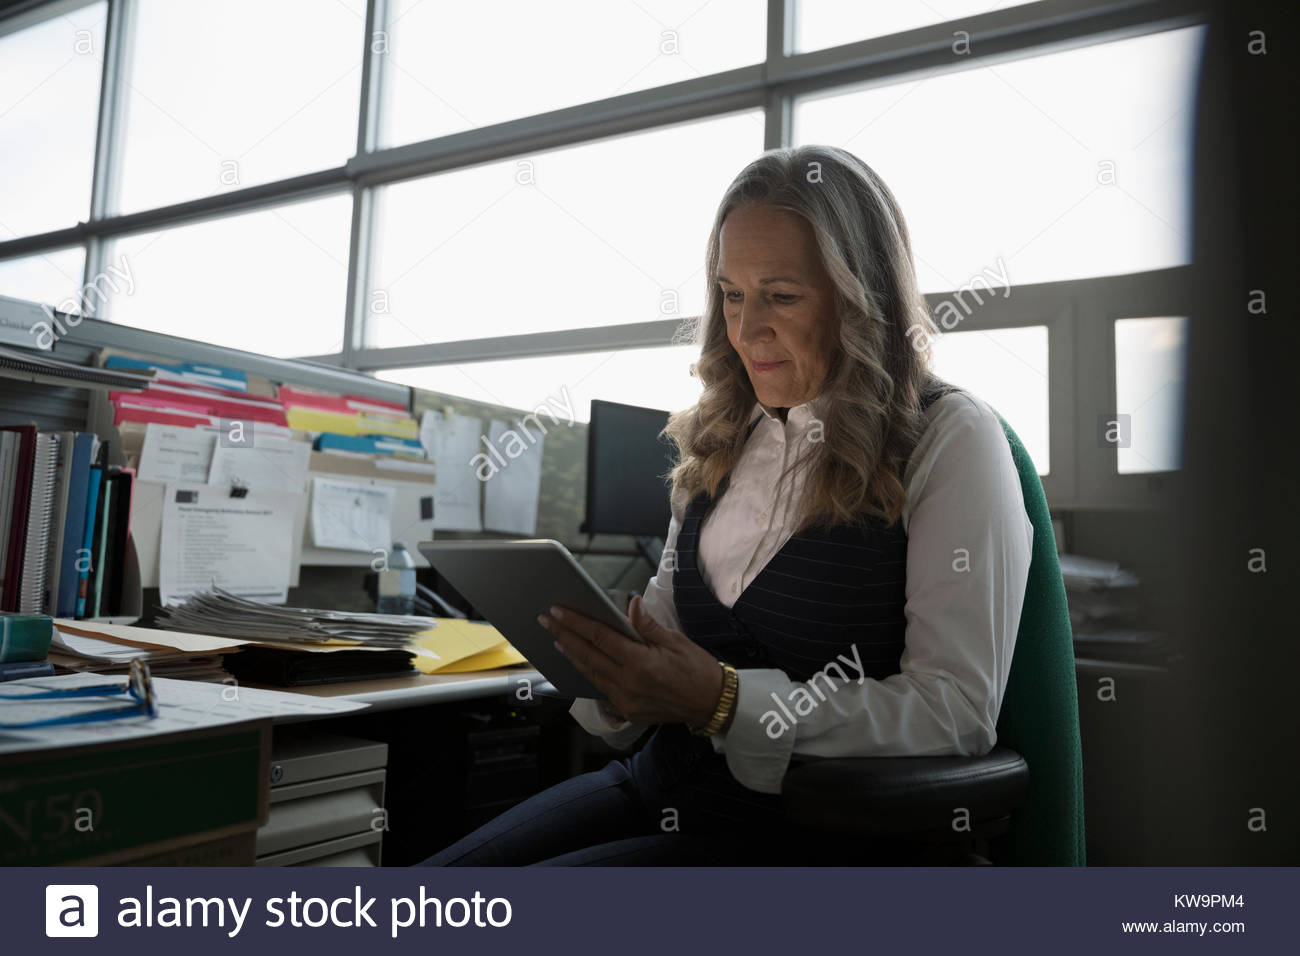 Focused mature businesswoman using digital tablet in office cubicle - Stock Image